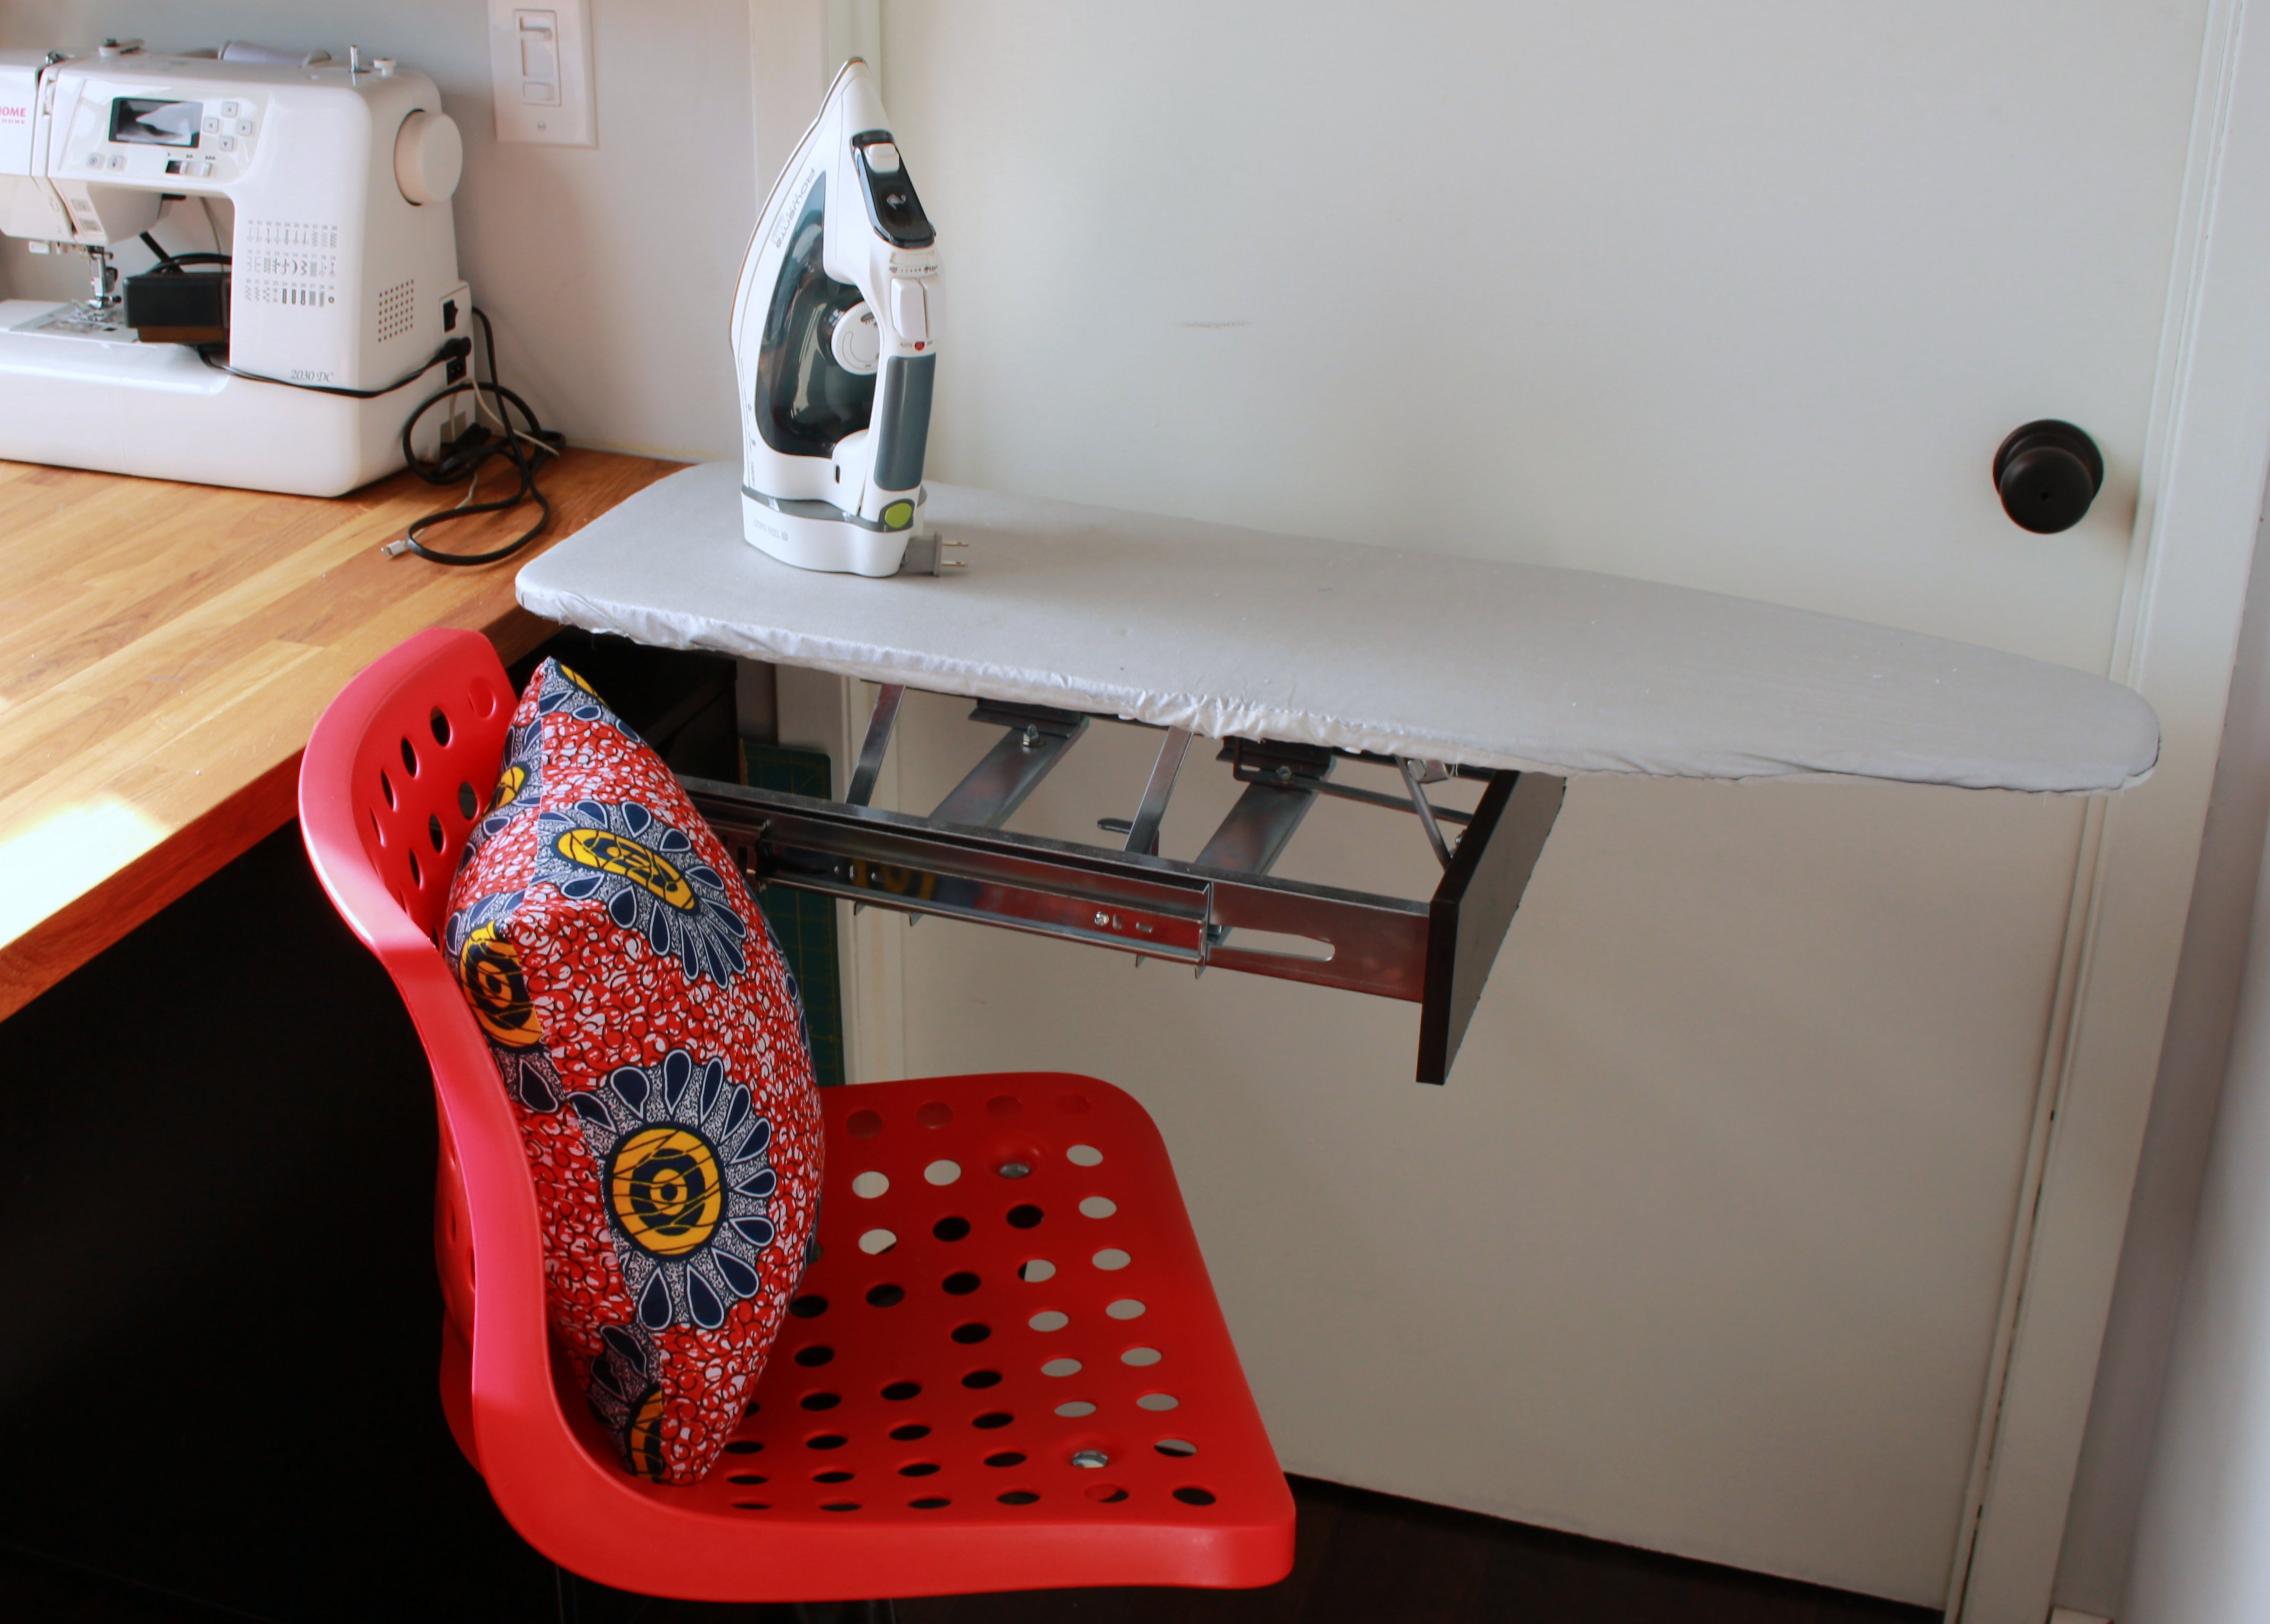 Ironing Board extended